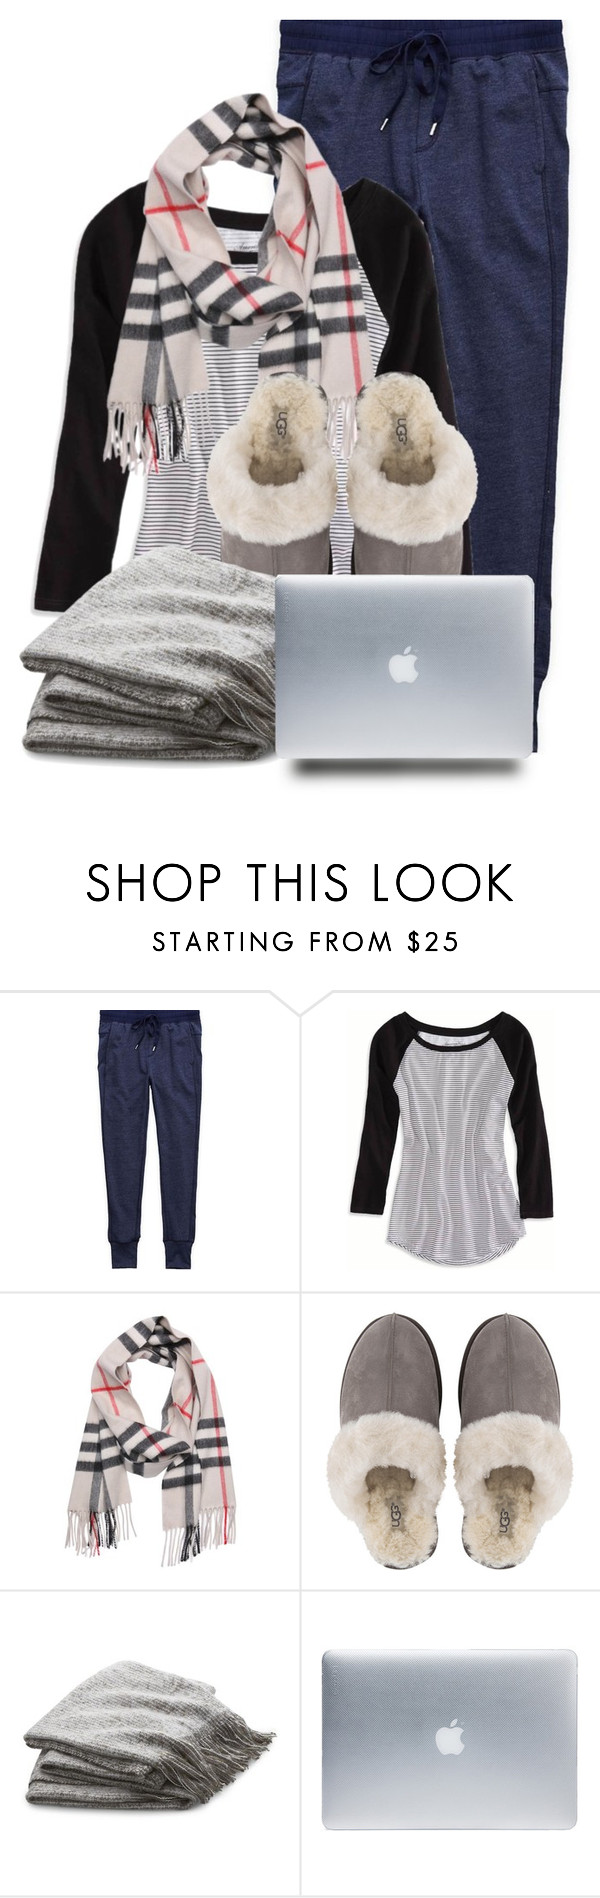 """""""Cozy Day Working from Home"""" by jlgoodman ❤ liked on Polyvore featuring Aerie, American Eagle Outfitters, Burberry, UGG, Crate and Barrel and Incase"""